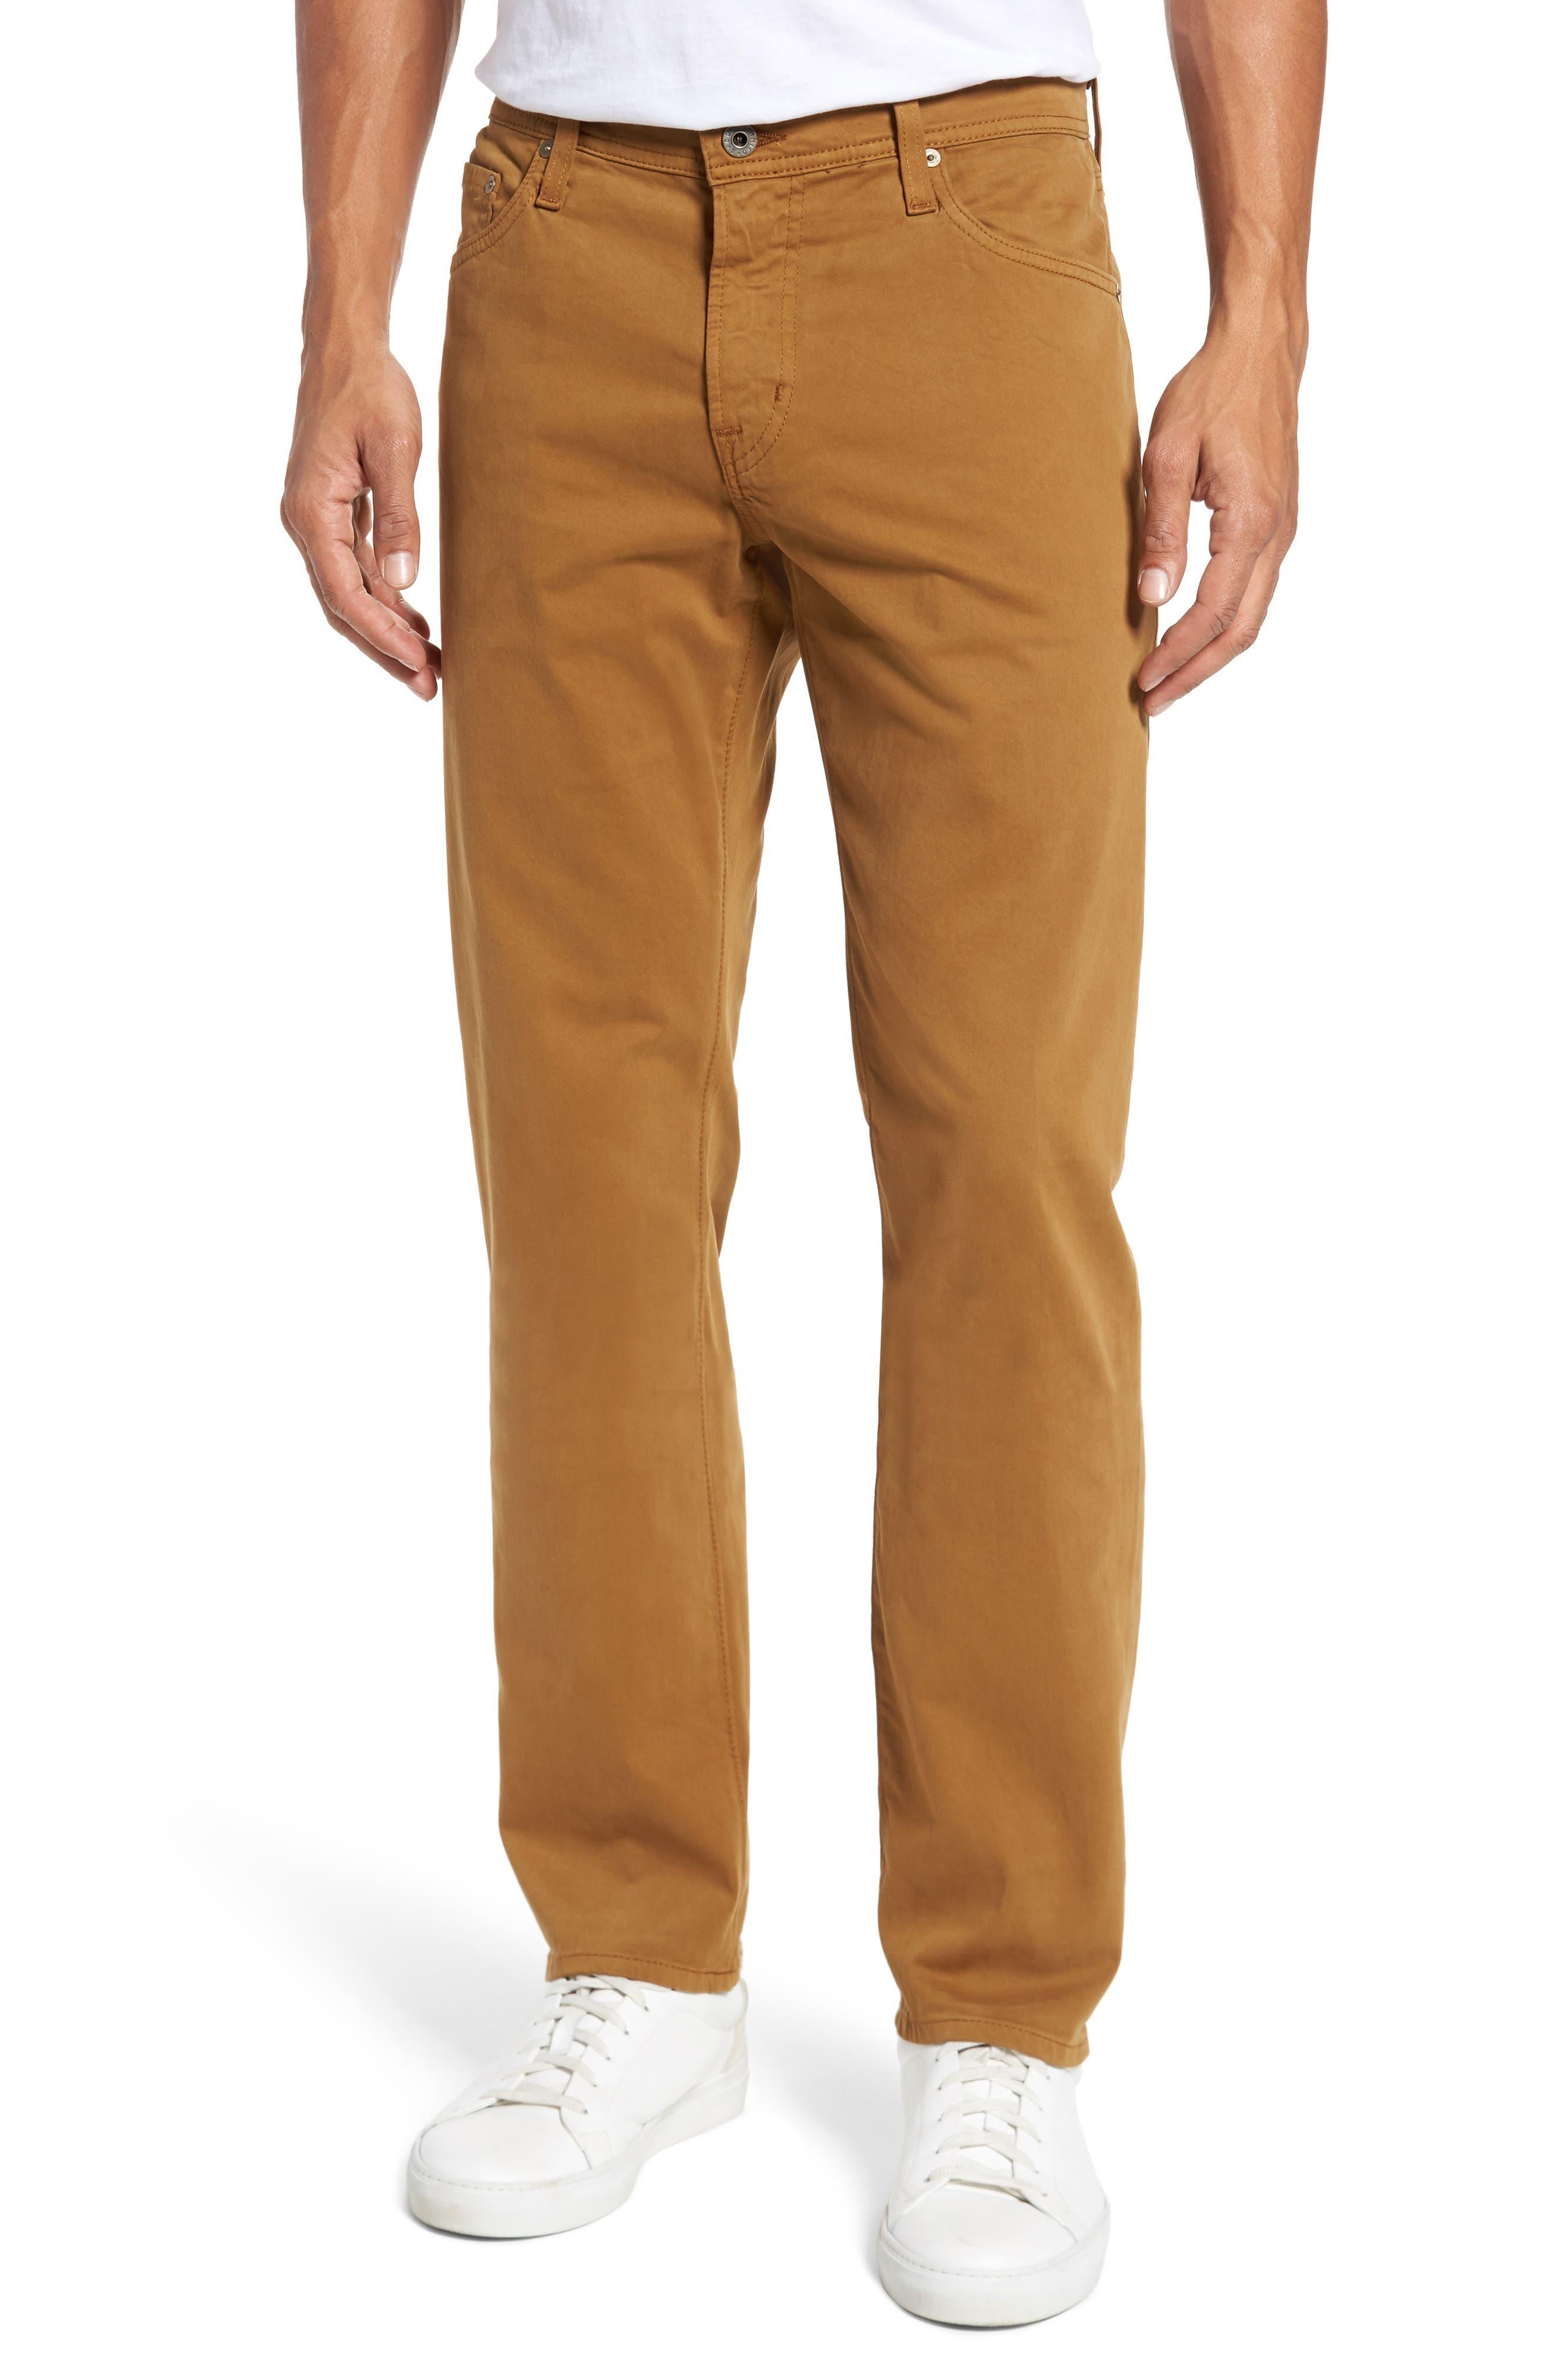 Graduate SUD Slim Straight Leg Pants,                             Main thumbnail 1, color,                             Burnt Saffron (Bfn)